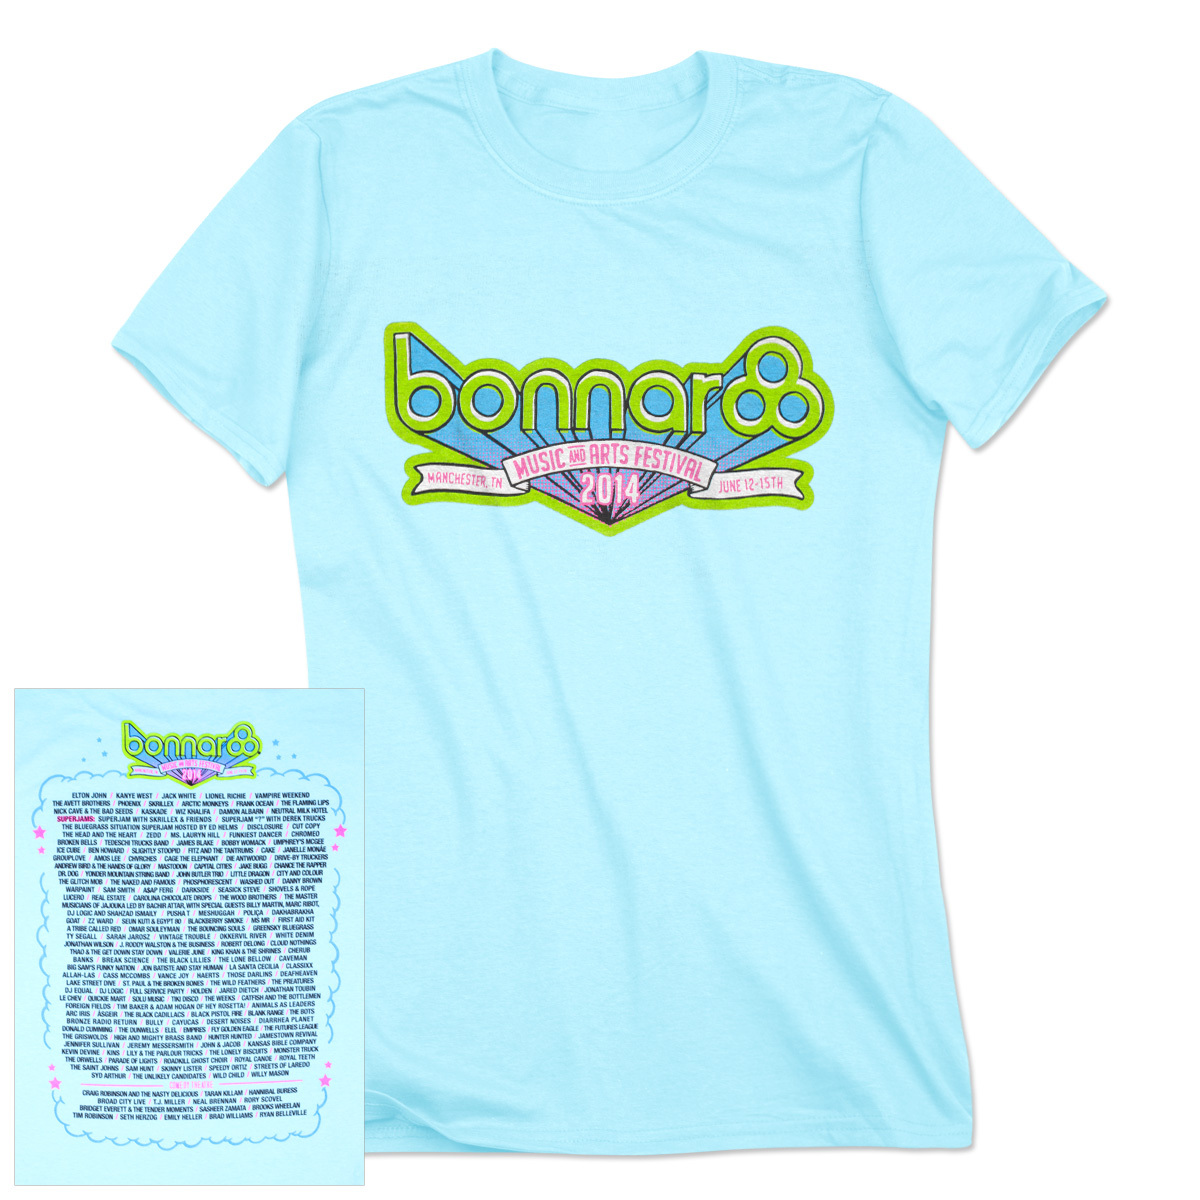 Bonnaroo 2014 Womens Main Event T-Shirt